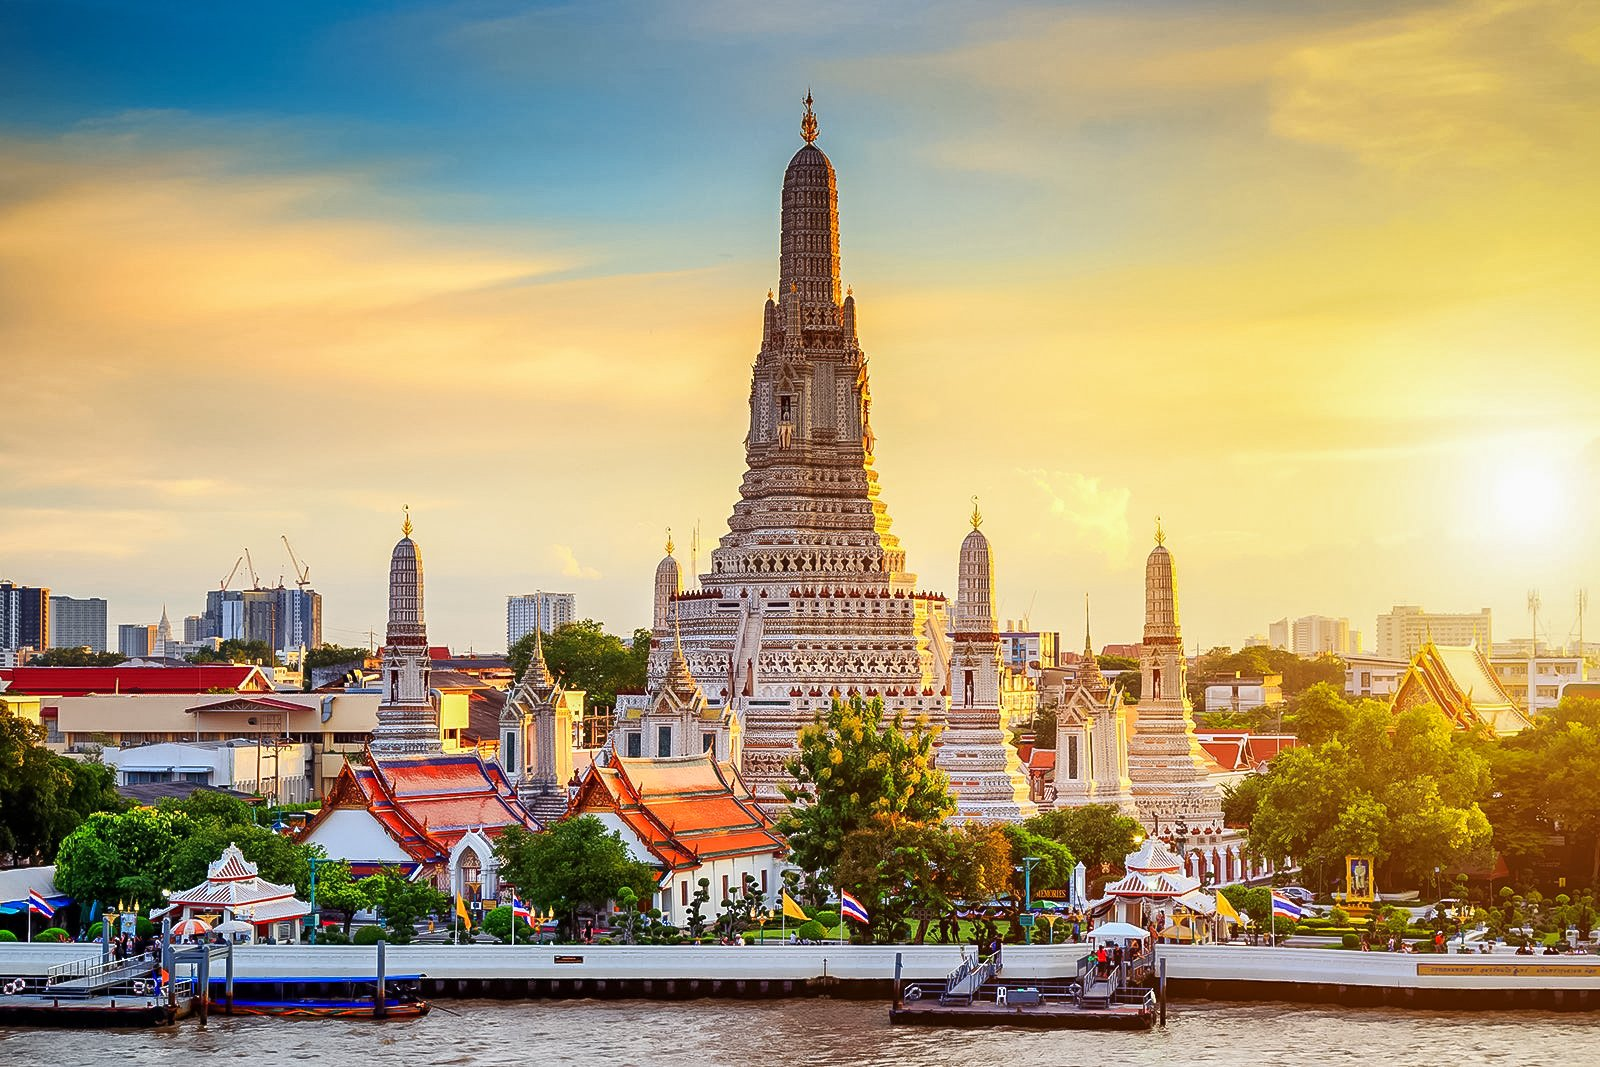 Wat Arun also called The Temple of Dawn and locally known as Wat Chaeng is located in Bangkok Thailand.